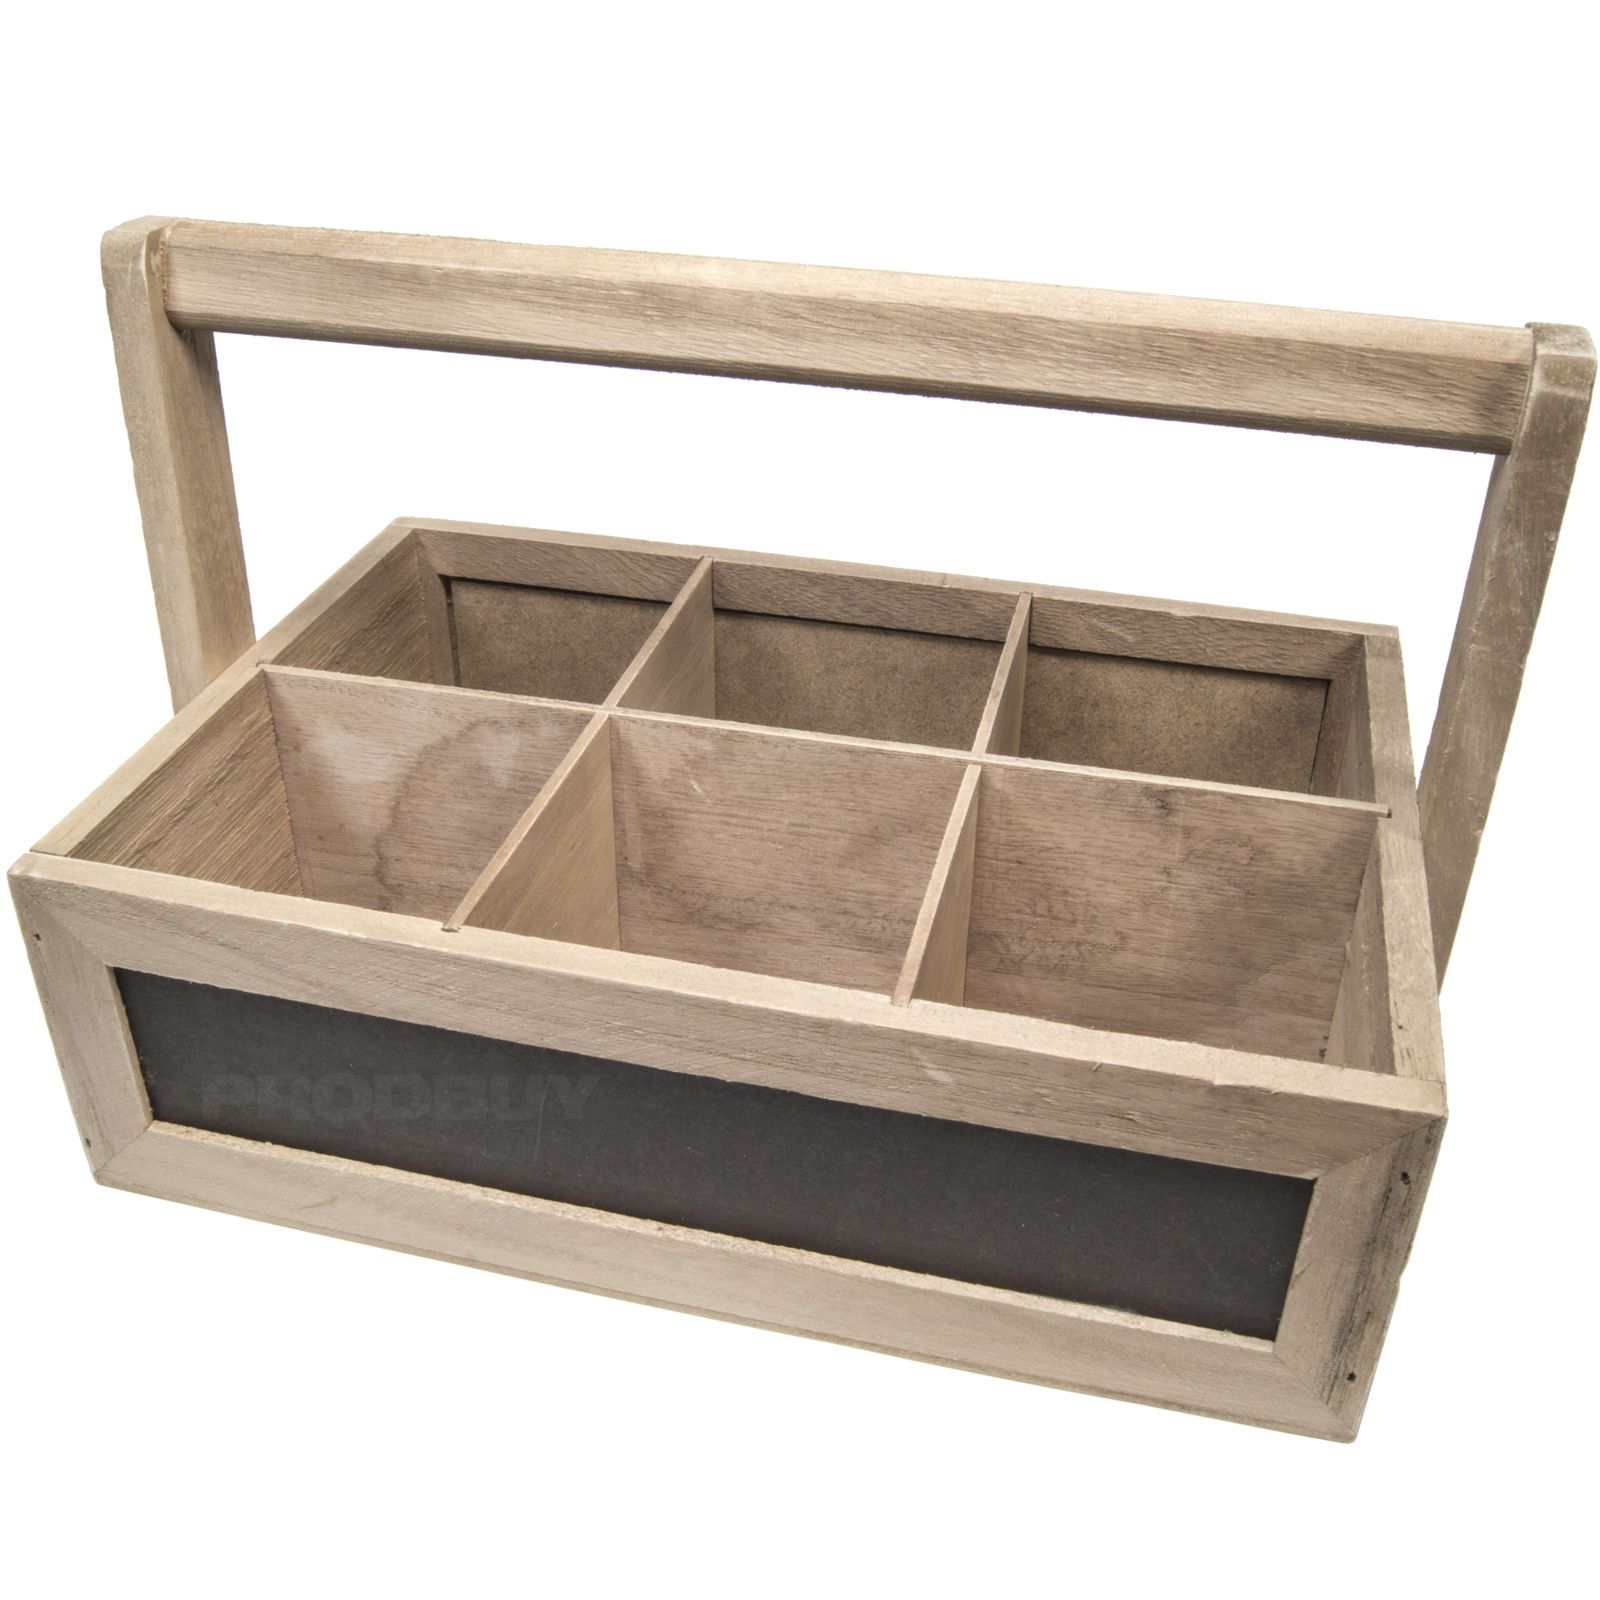 Vintage Wooden Small Box Crate rustic wall display nails storage craft garage